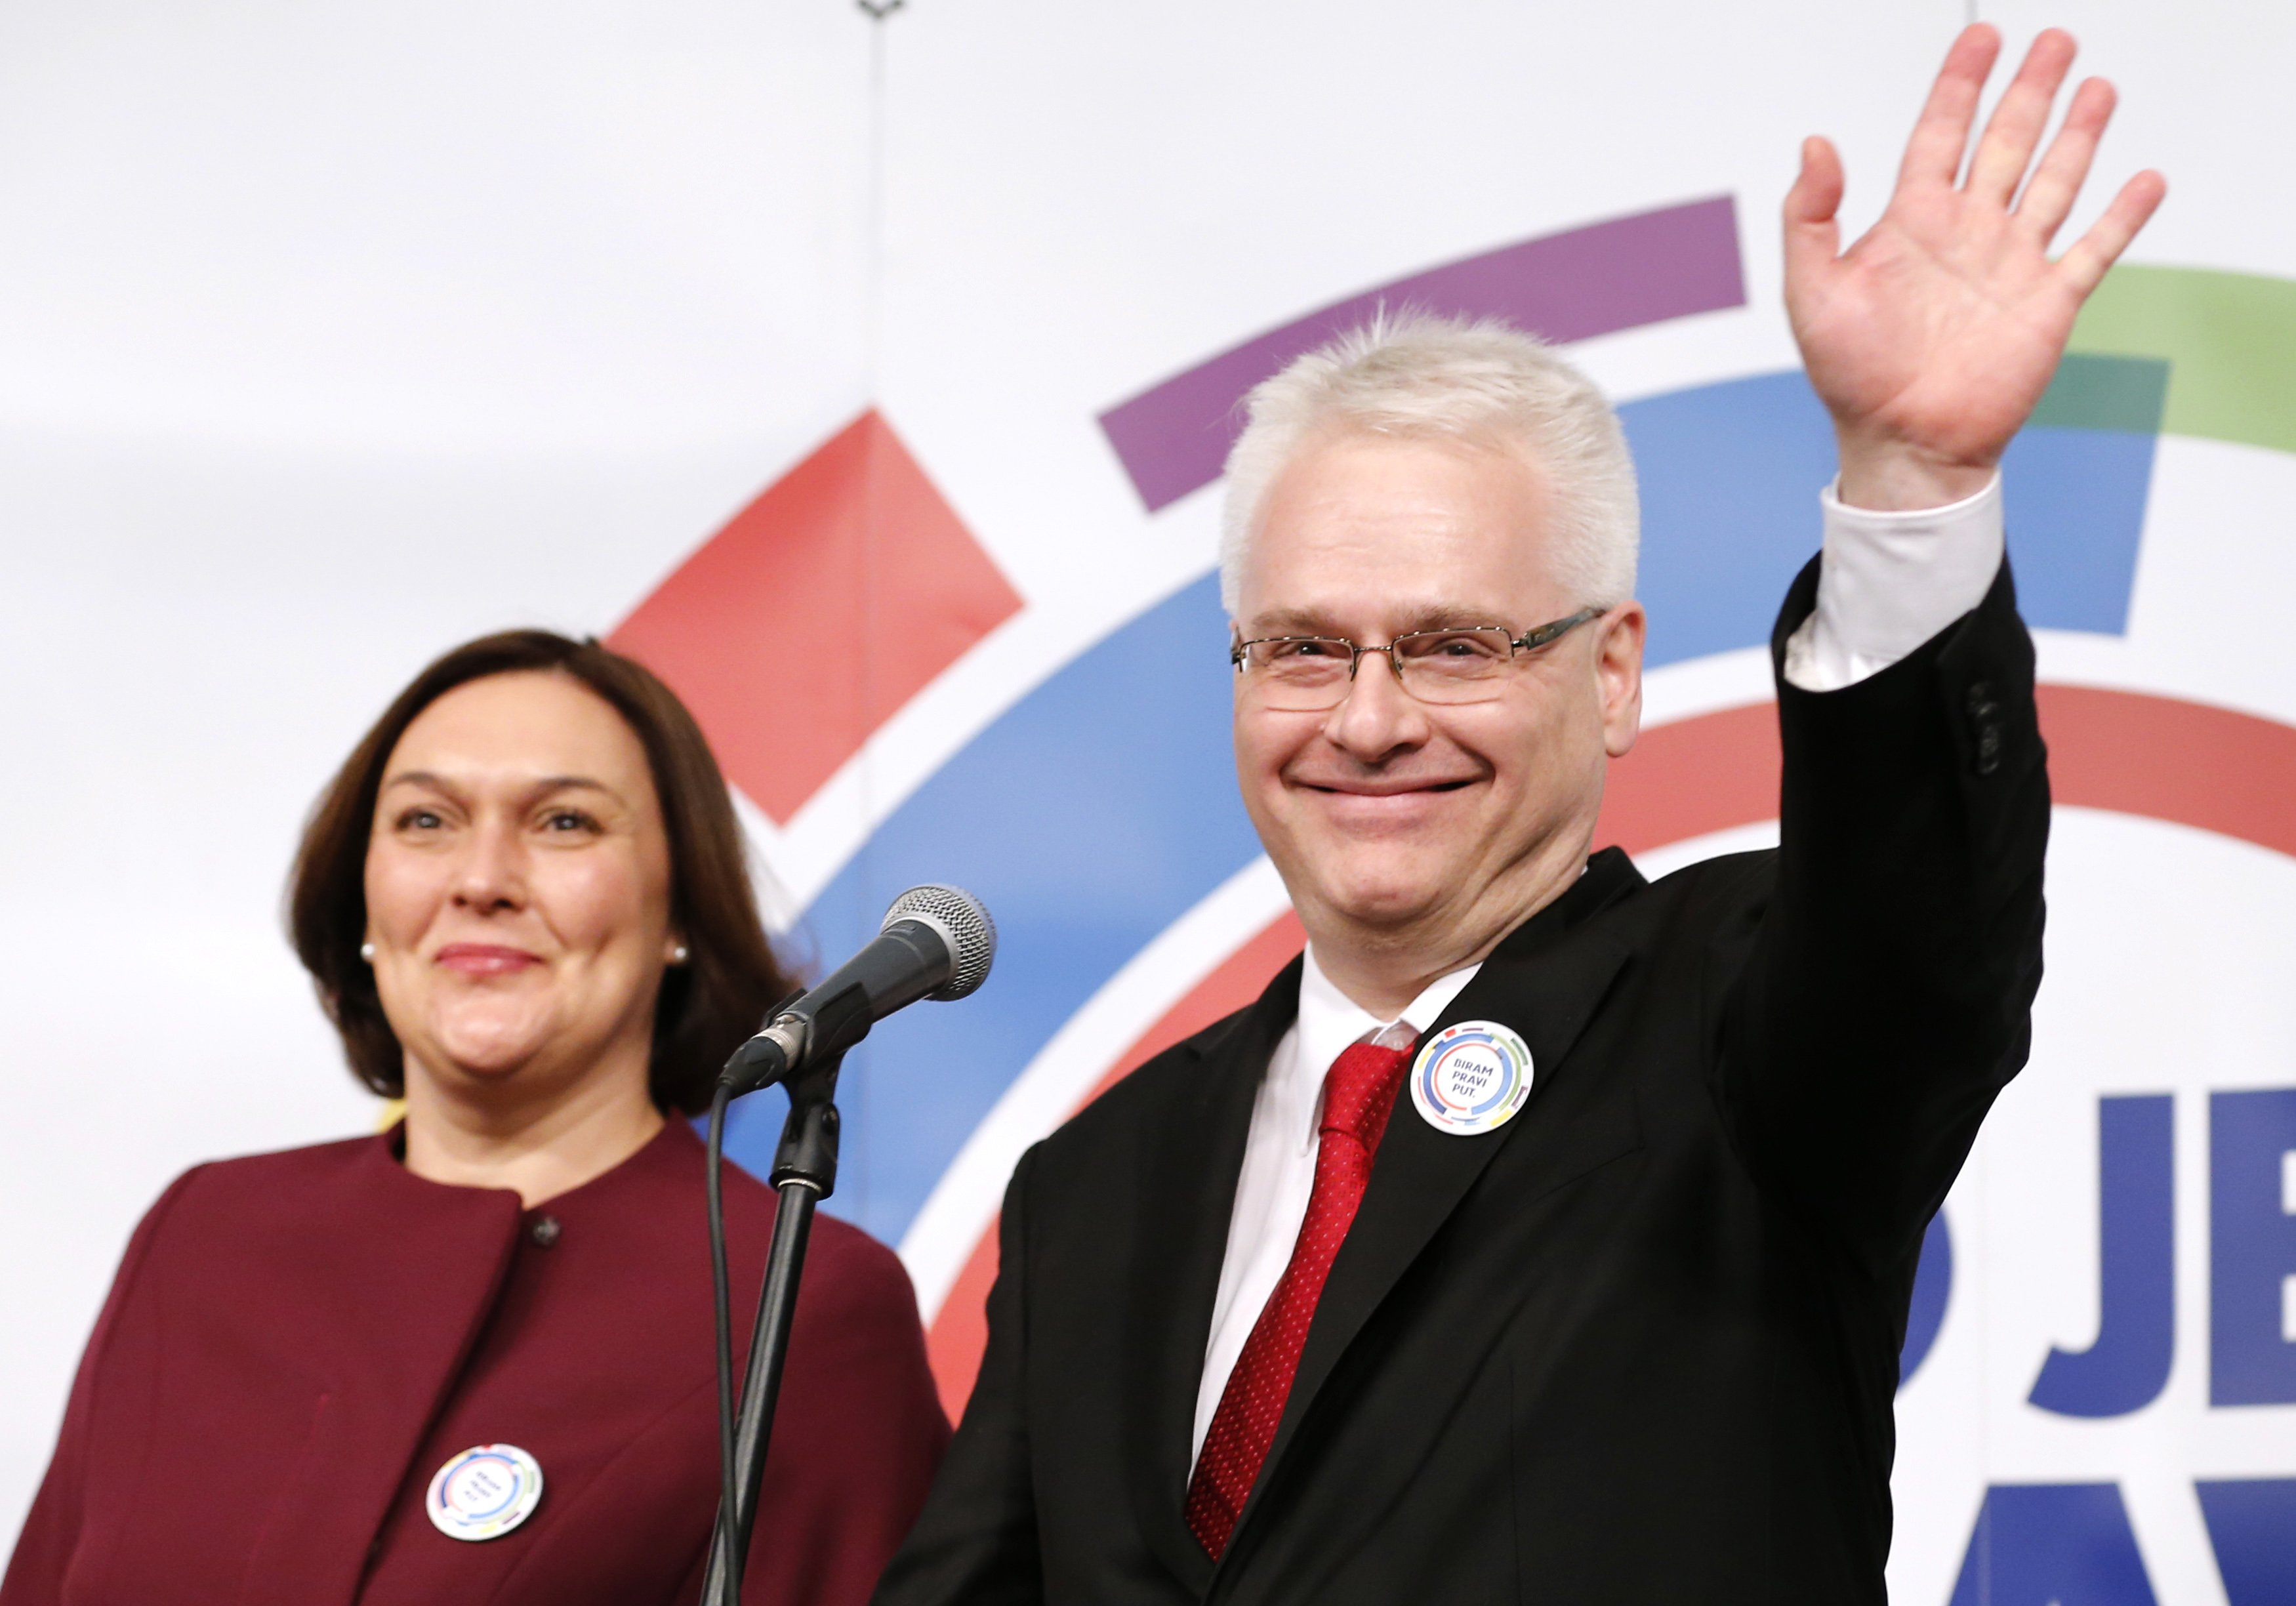 Croatian president and presidential candidate Ivo Josipovic stands with his wife Tatjana Josipovic as he waves to supporters after the unofficial results in the headquarters in Zagreb December 28, 2014. Josipovic faces a tight run-off next month to try to win a second five-year term as Croatia's president after failing to secure a majority from voters frustrated by the country's economic malaise. REUTERS/Antonio Bronic (CROATIA - Tags: POLITICS ELECTIONS)